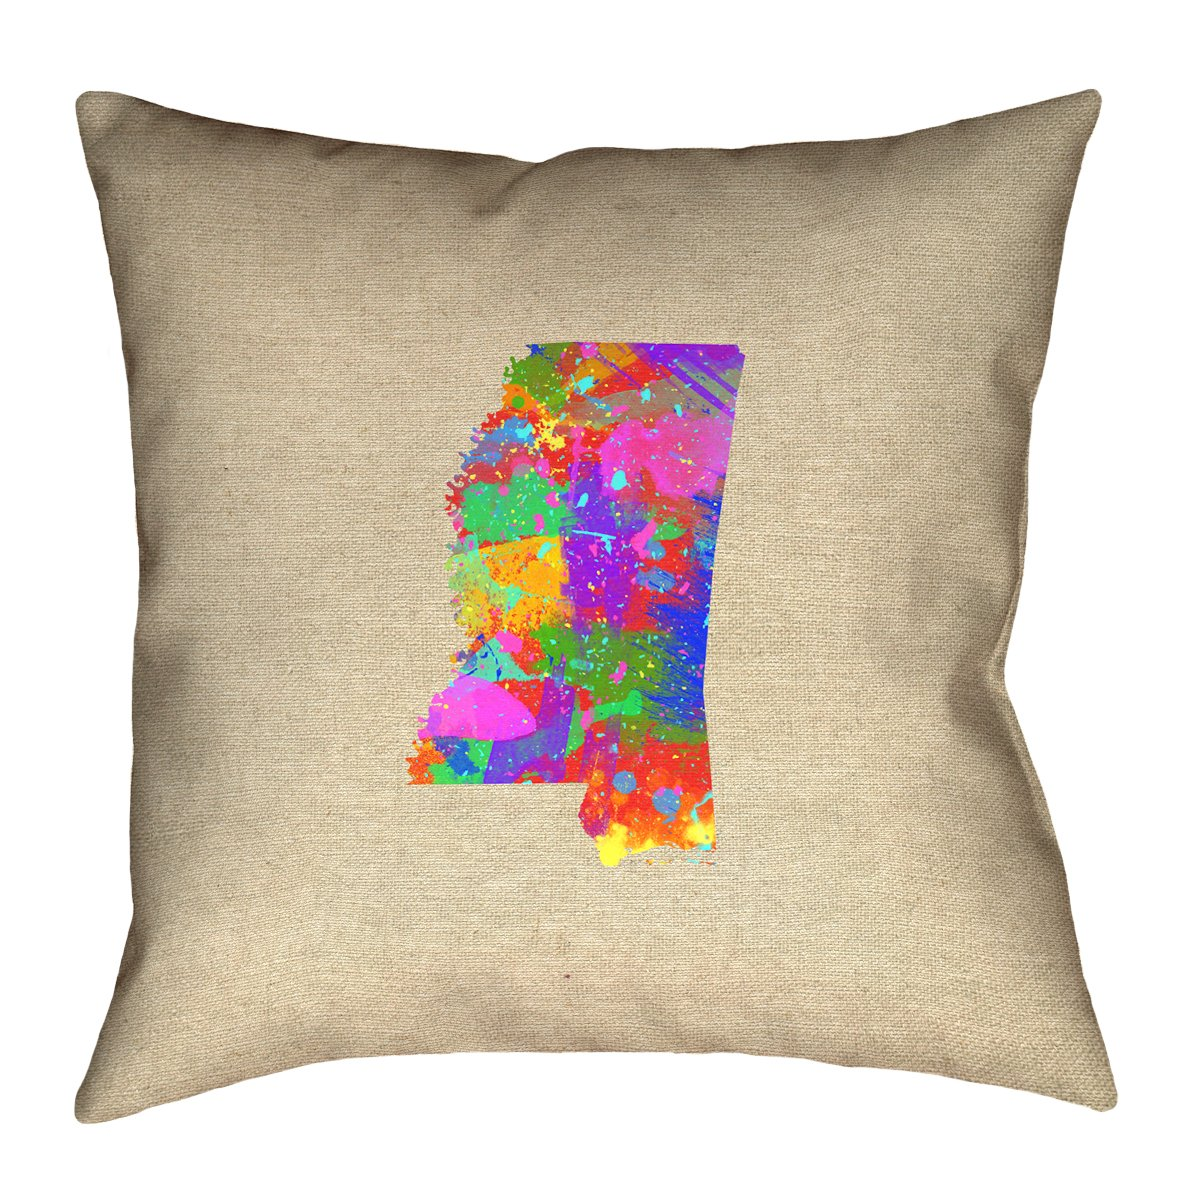 ArtVerse Katelyn Smith 36 x 36 Floor Double Sided Print with Concealed Zipper /& Insert Mississippi Watercolor Pillow